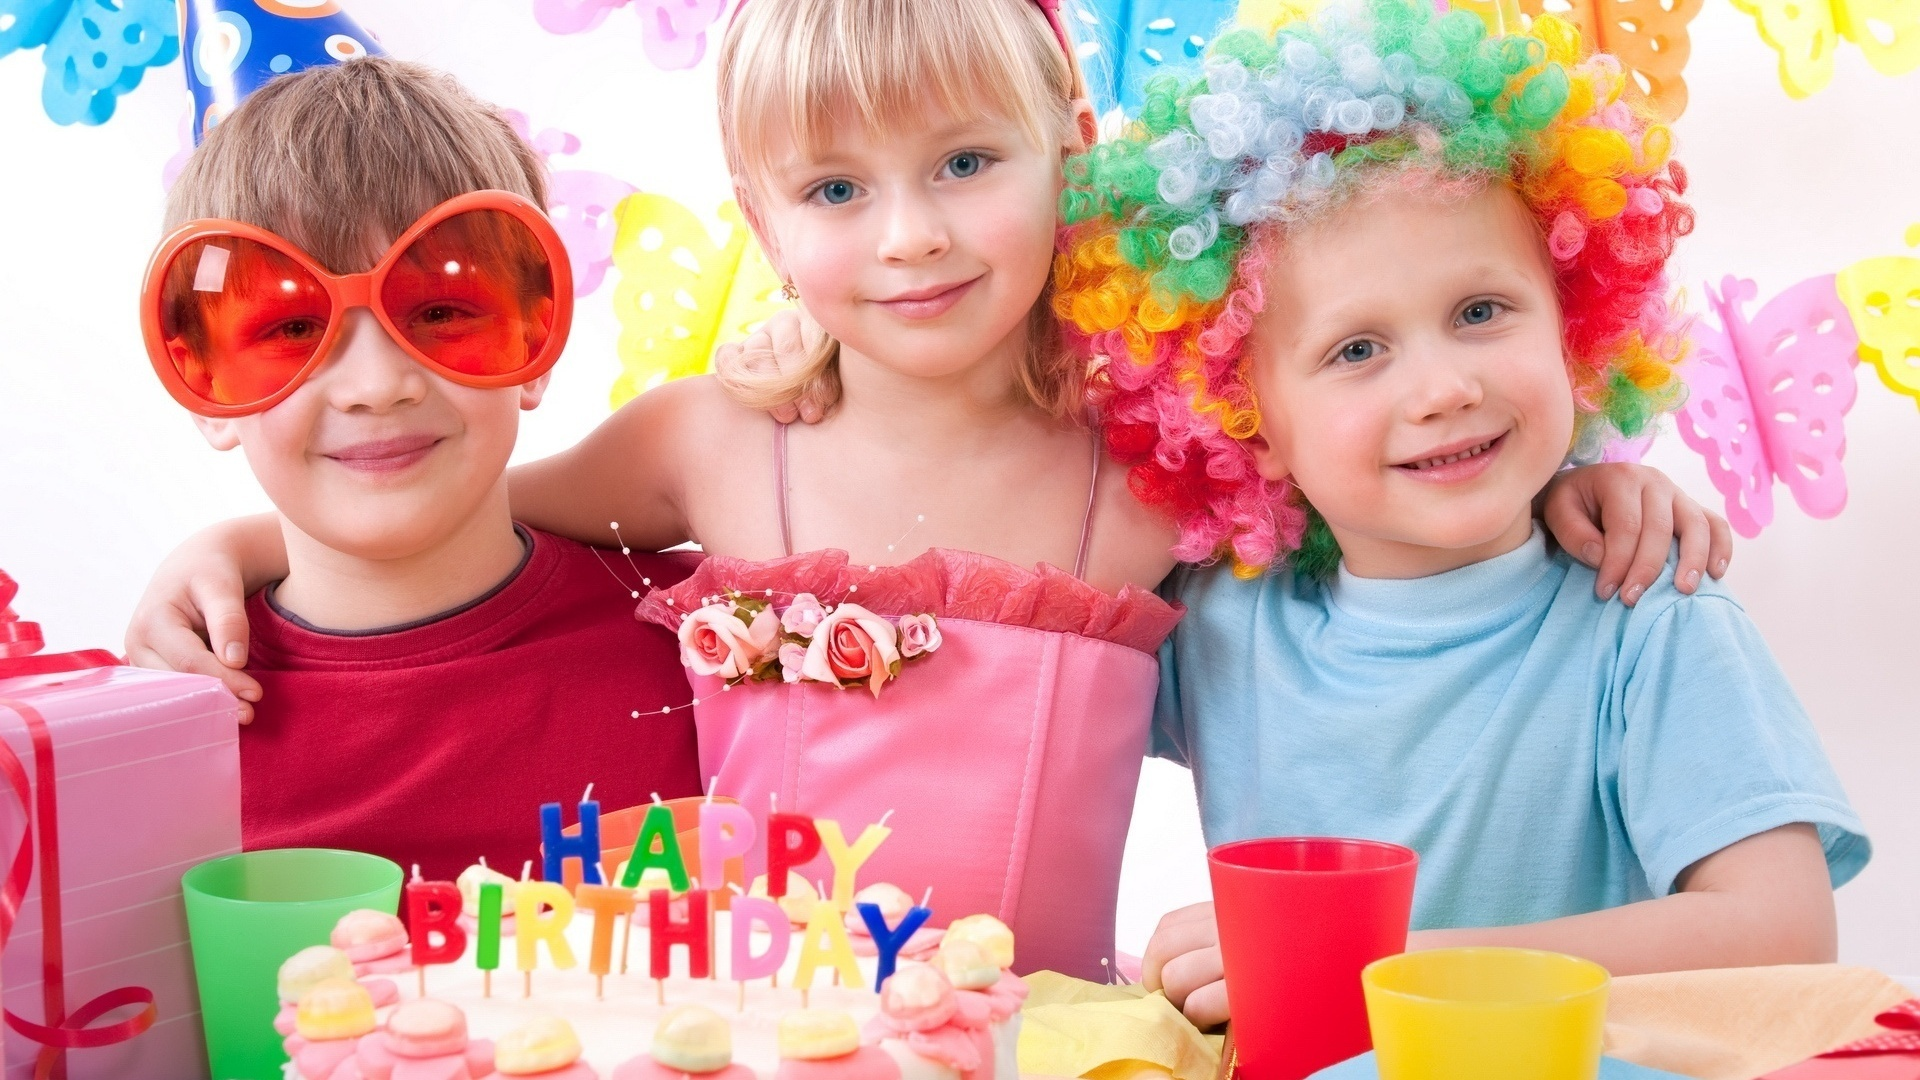 Kids Birthday Party | 1920 x 1080 | Download | Close